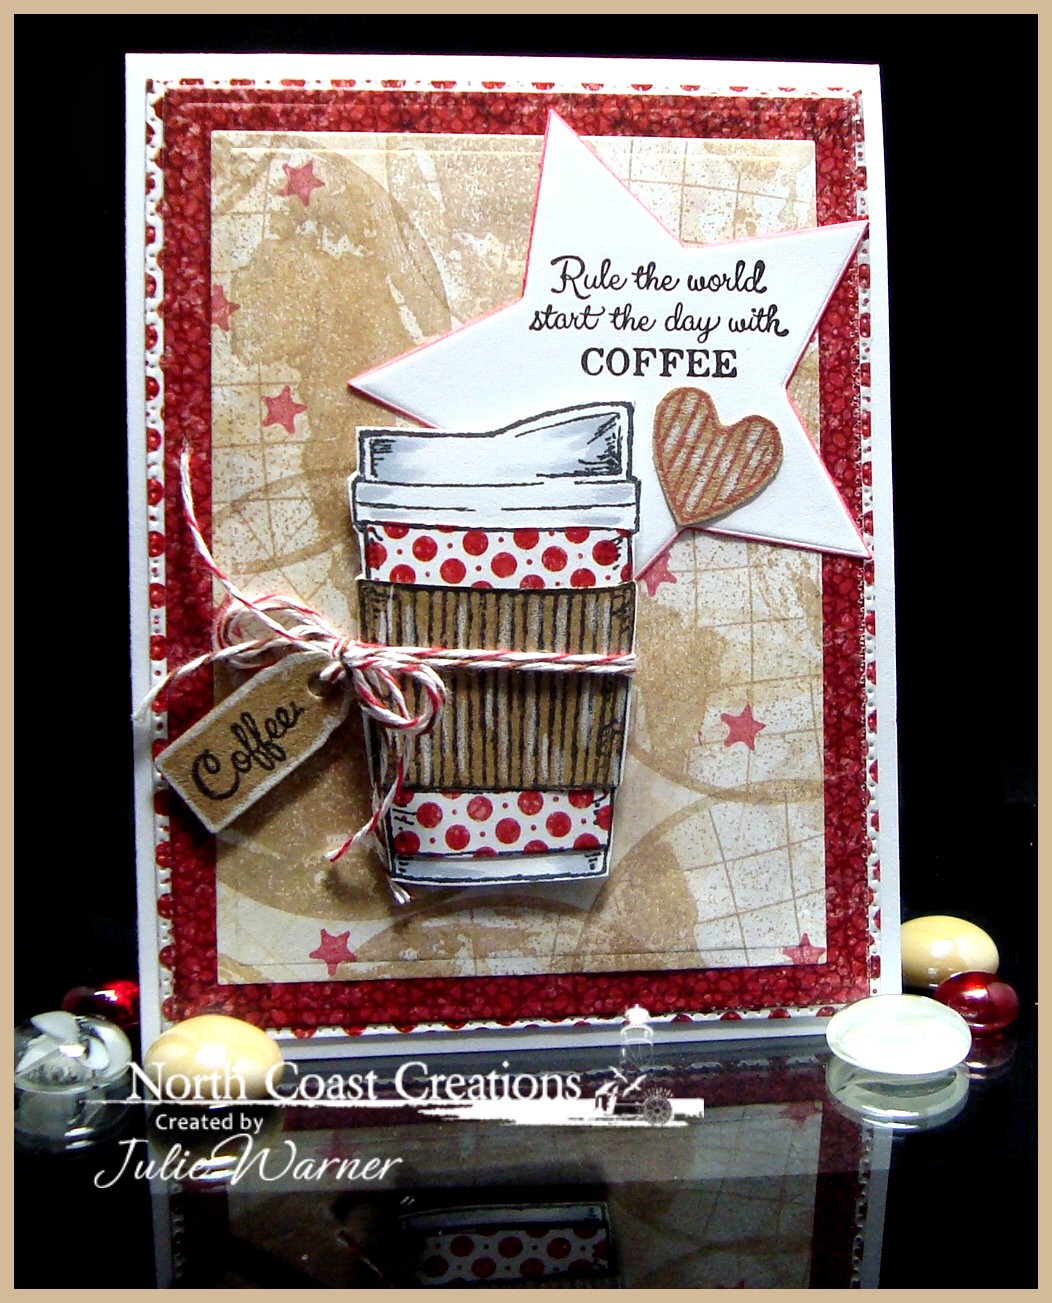 Stamps - North Coast Creations Warm My Heart, What's Brewin'?, Our Daily Bread Designs The Earth, Shine On, Custom Sparkling Stars Dies, Custom Flourished Star Pattern Die, Custom Mini Tags Dies, Patriotic Paper Collection